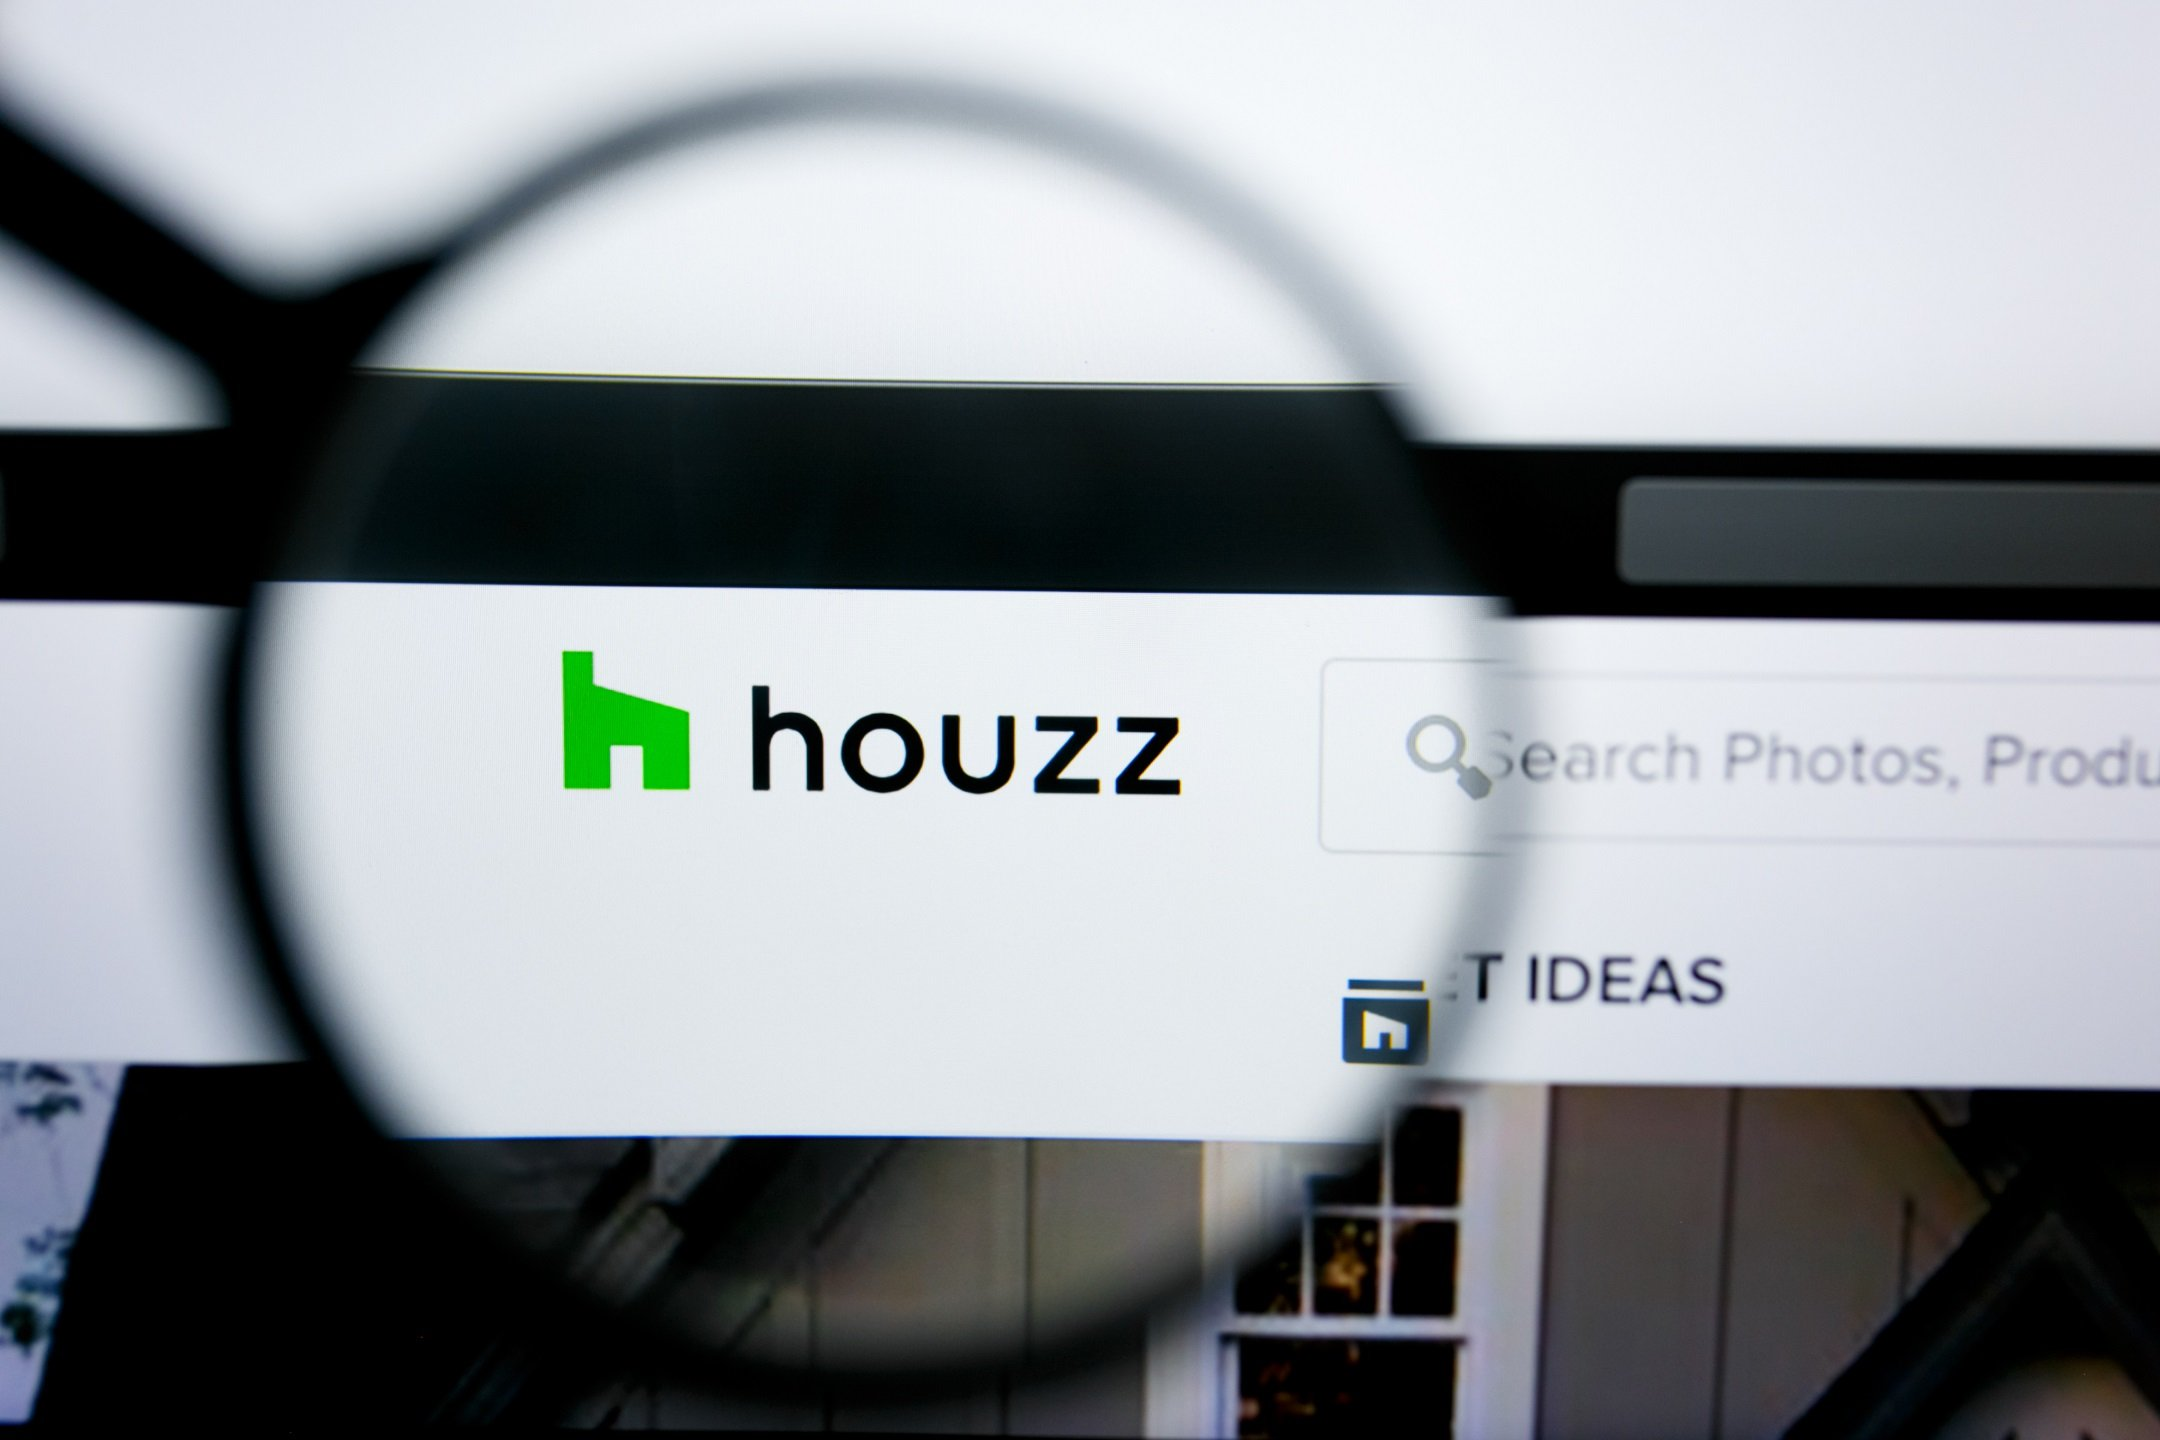 Houzz Logo and Search Bar on the Main Page